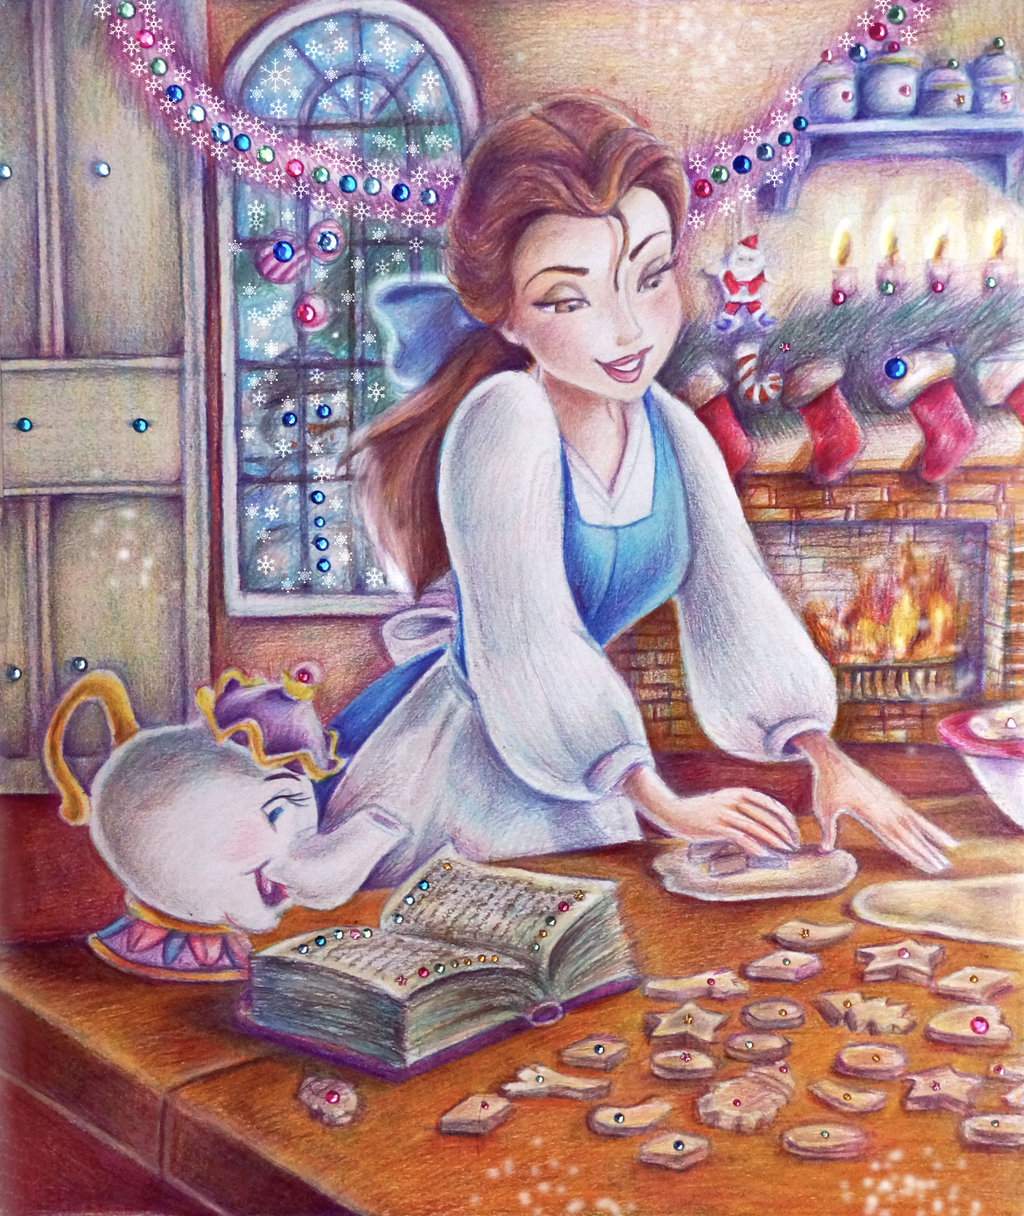 belle__christmas_cookie__by_alena_koshkar-d86pweg